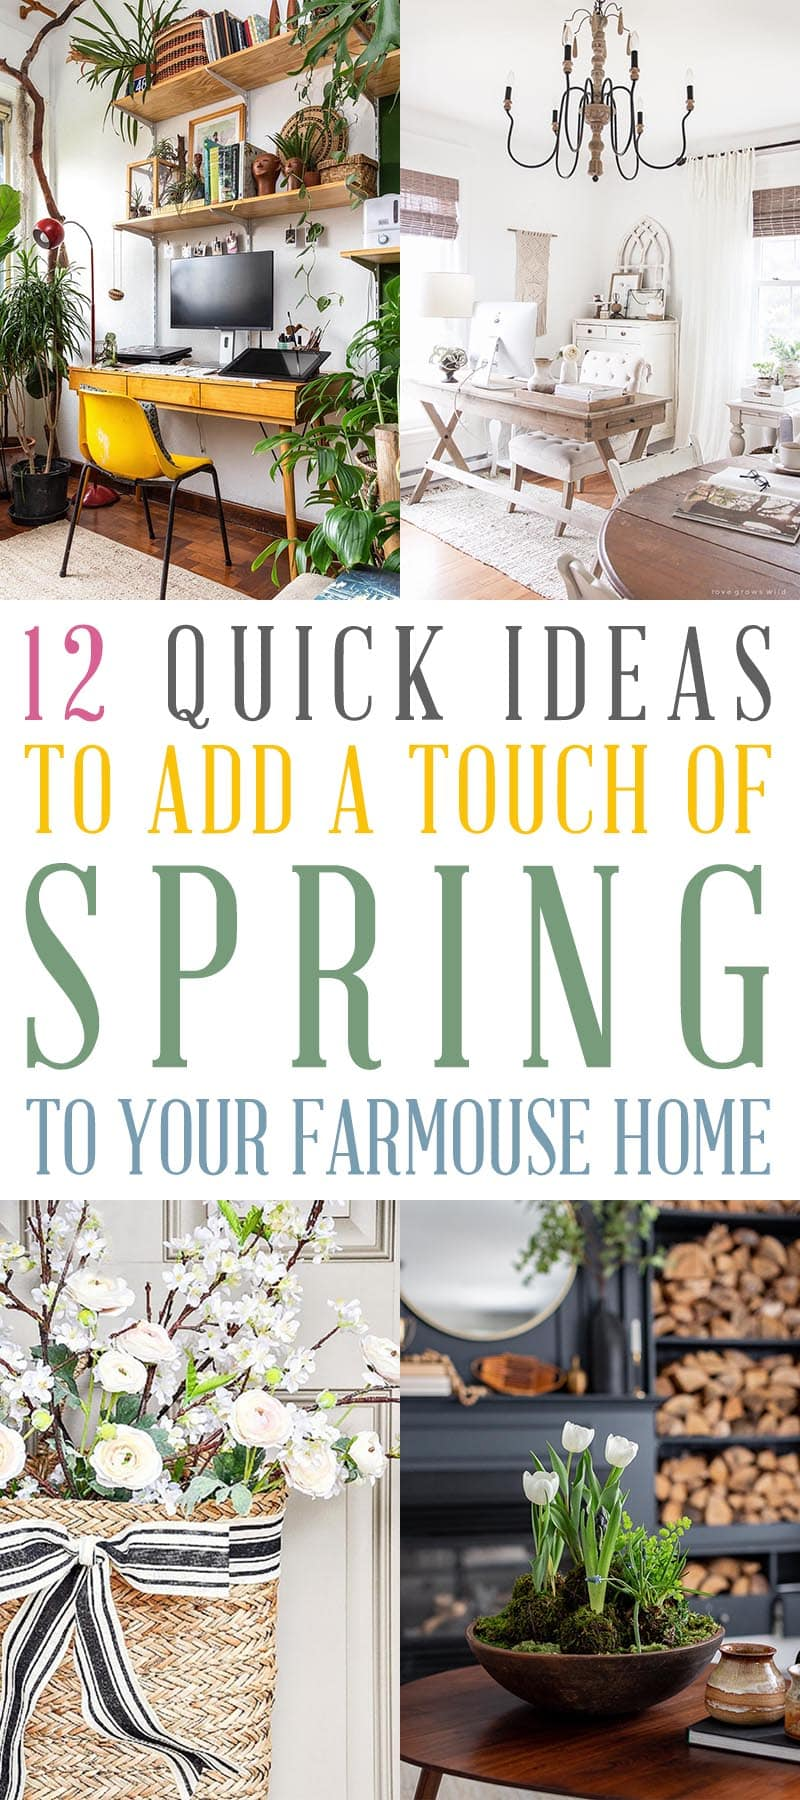 Spring is right around the corner… so to get things started here are 12 Quick and Easy Ways To Add Spring To Your Farmhouse Home.